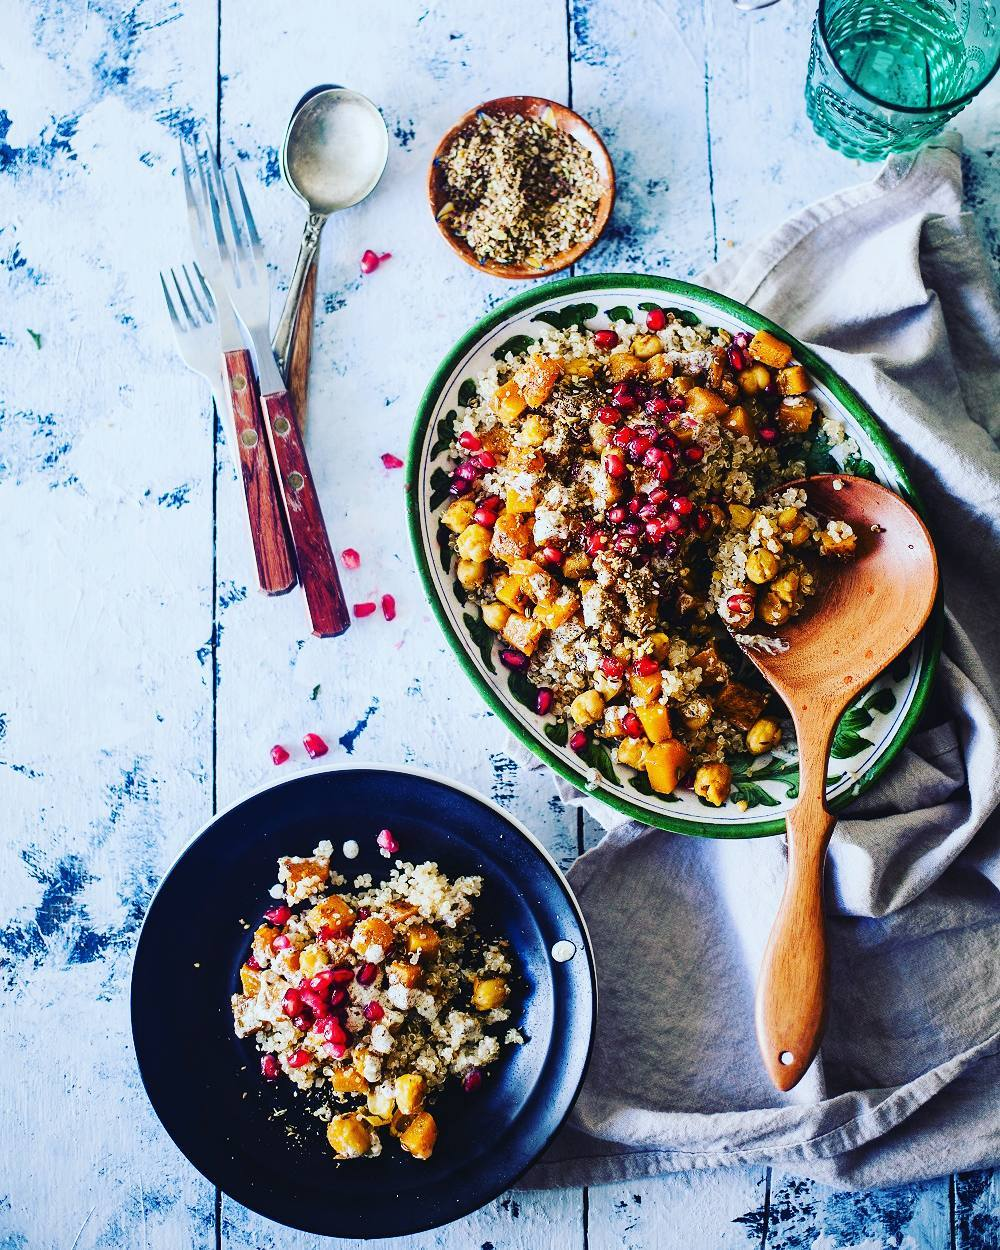 You need superfoods to help you power through #Navratri! 💪 Add to the power of the super-chickpea with pumpkin, dukkah spice, quinoa and more.  Stop by Foodhall to buy the makings of this warm salad.🍲 #Food #Salad #FoodhallIndia #ForTheLoveOfFood #Foodpic